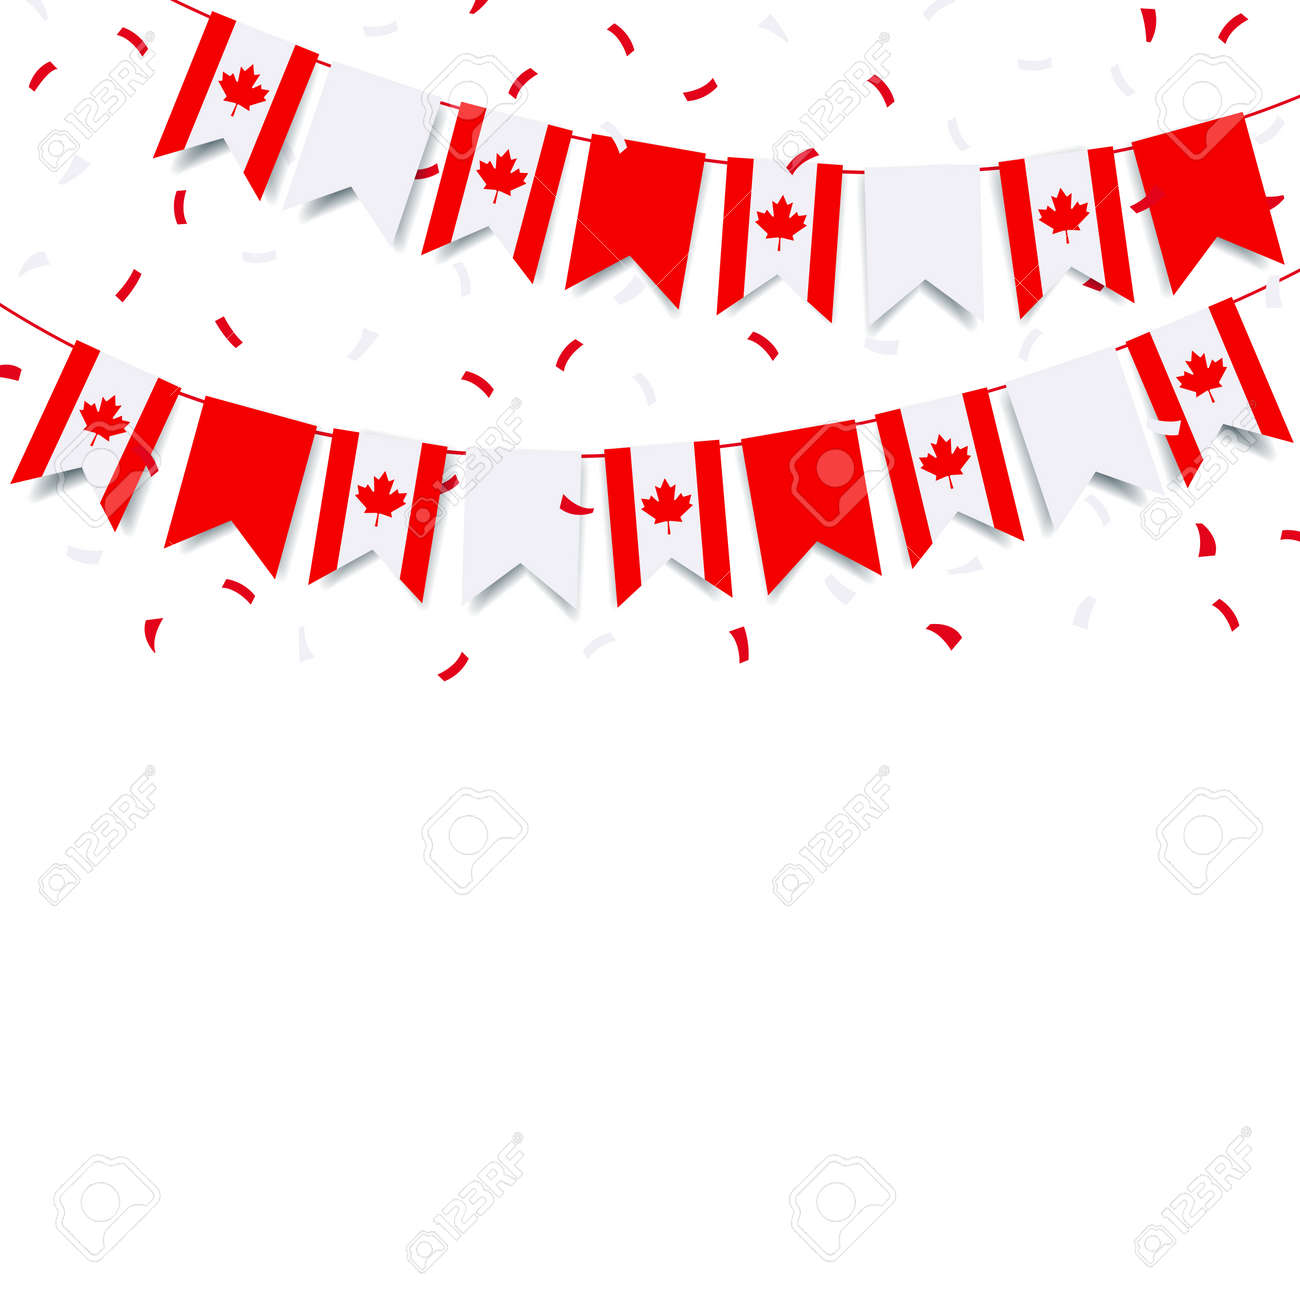 Vector Illustration of Canada day. Garland with the flag of Canada on a white background. - 169208494